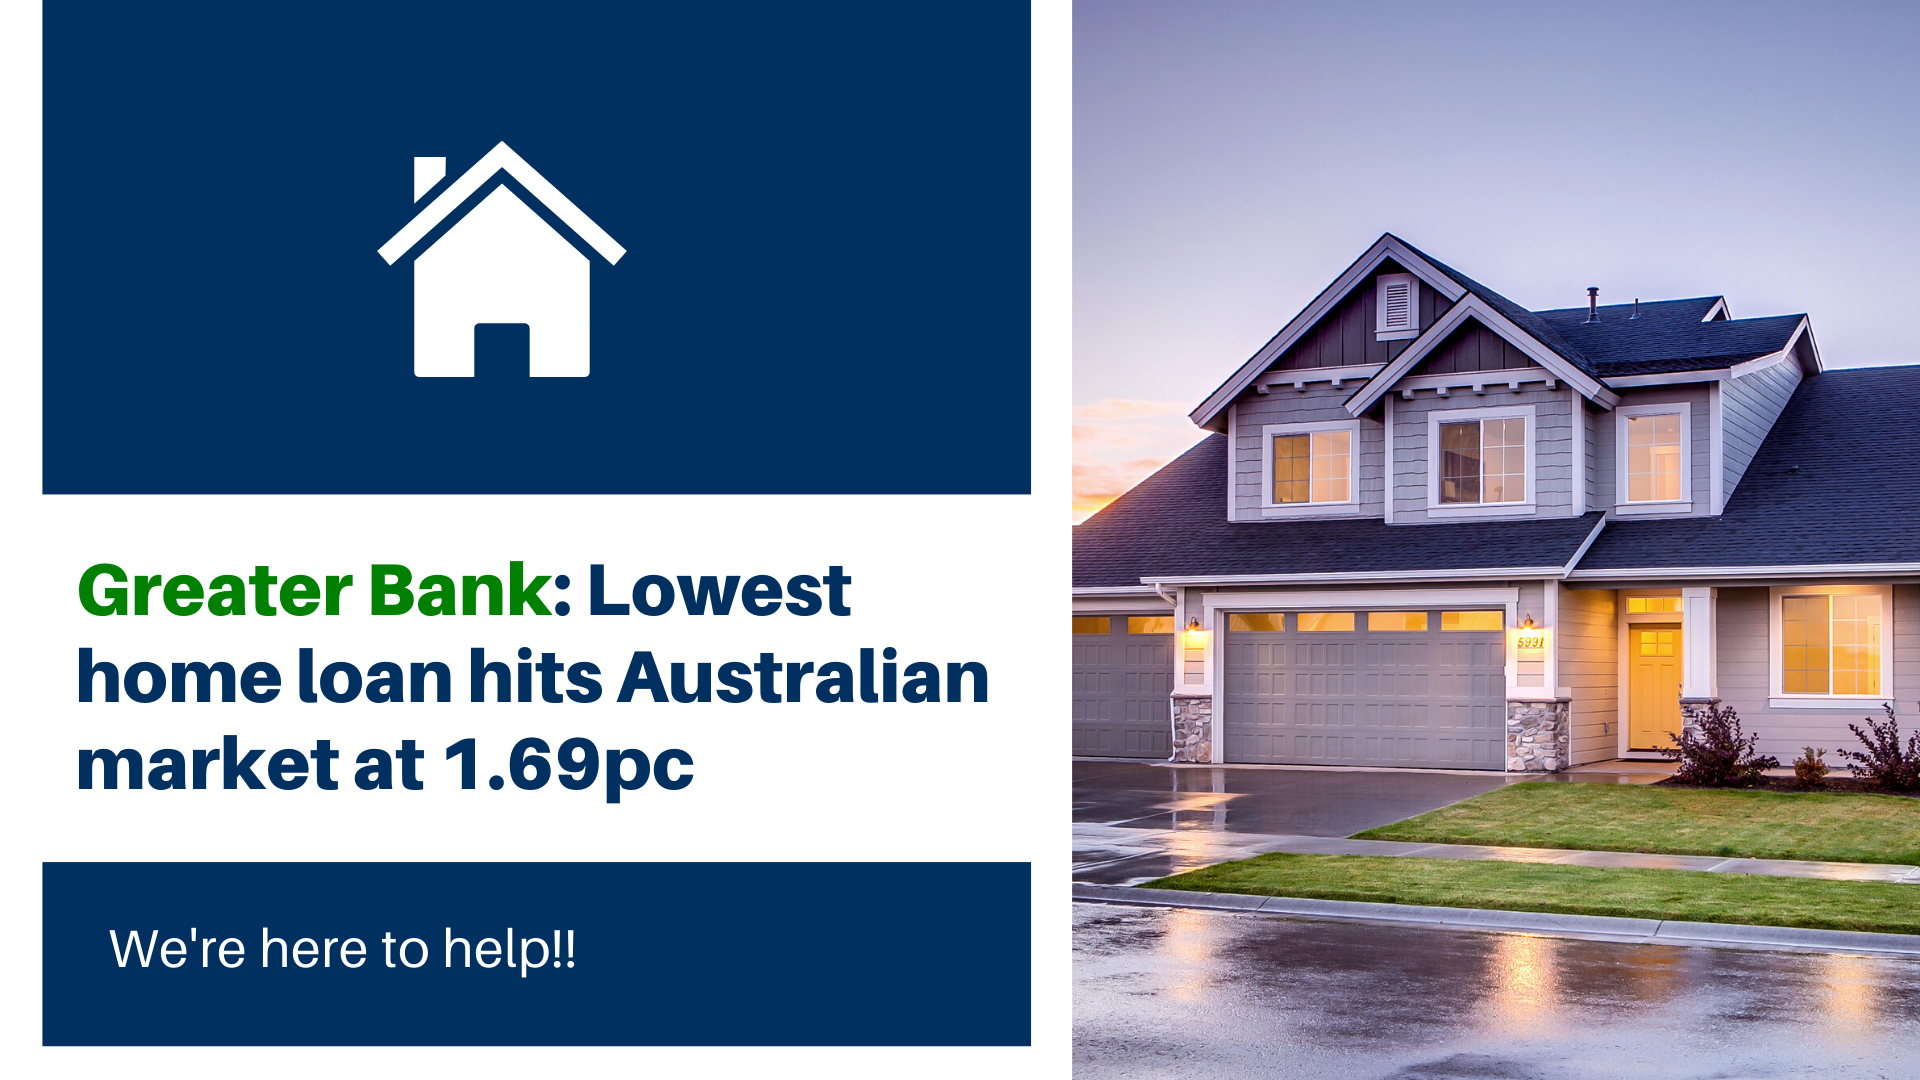 Greater Bank: Lowest home loan hits Australian market at 1.69pc